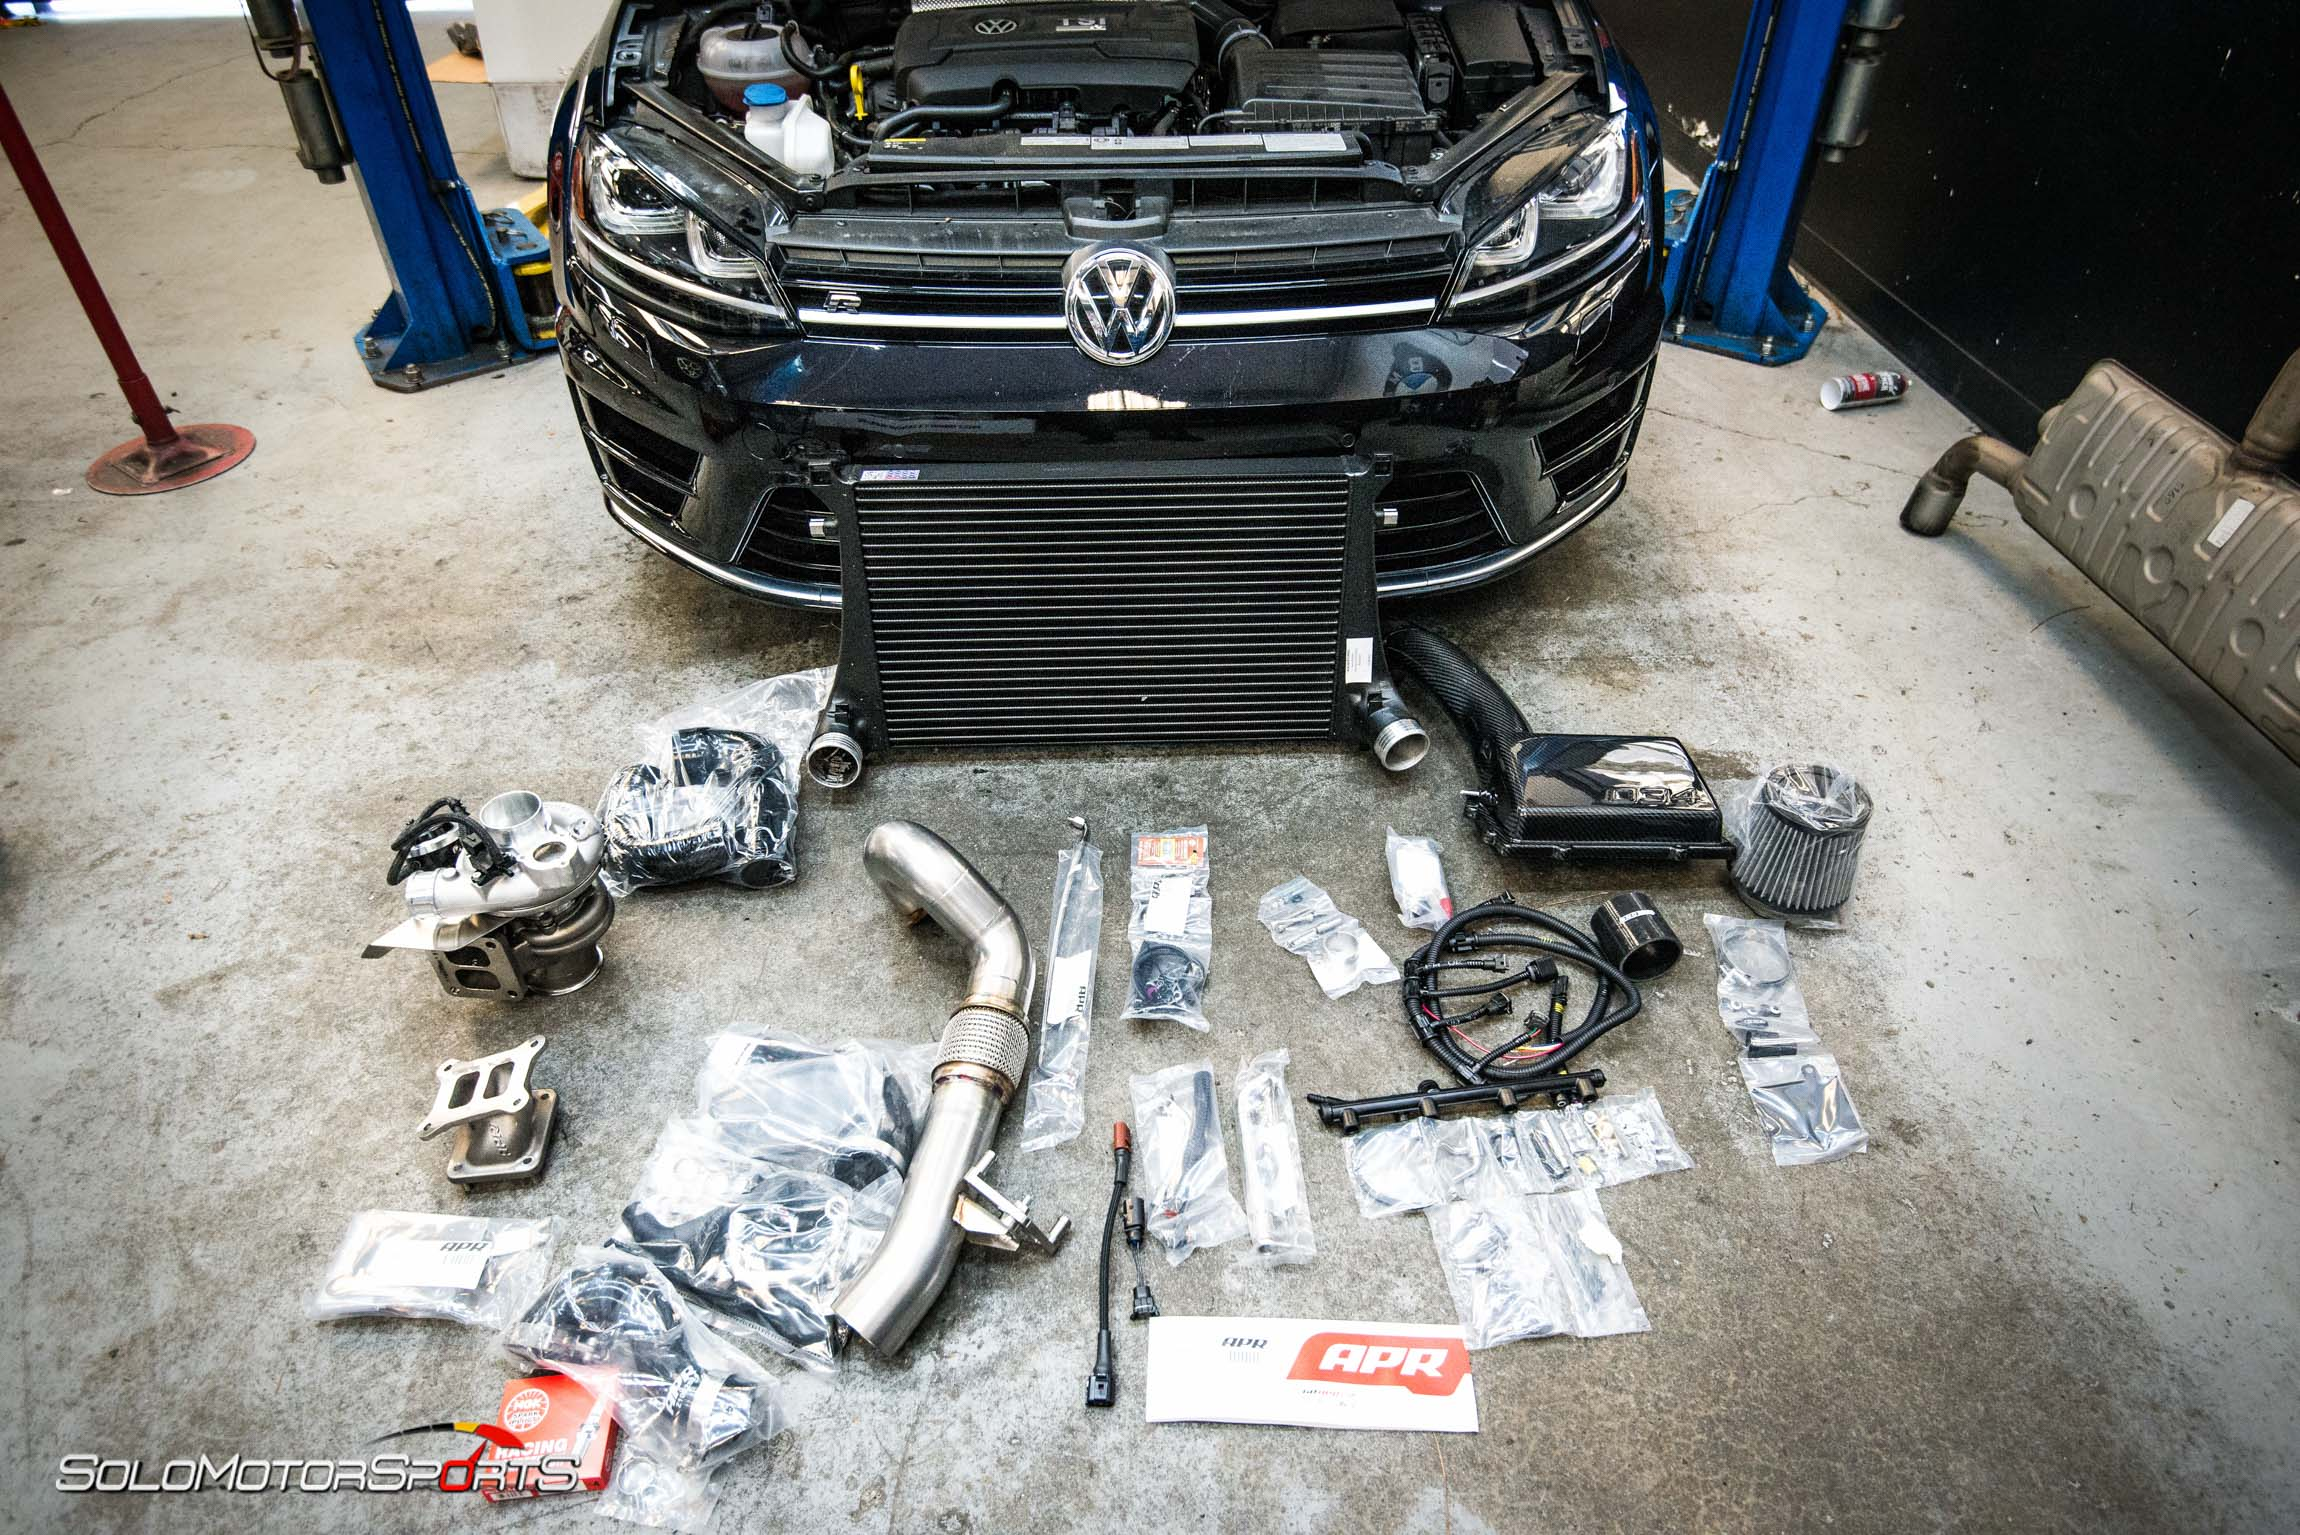 volkwagen vw golf r apr stage 3 034 motorsports big turbo stage3 stageIII dynometer dyno power bolt-ons one stop shop solo motorsports golfr bigturbo big turbo